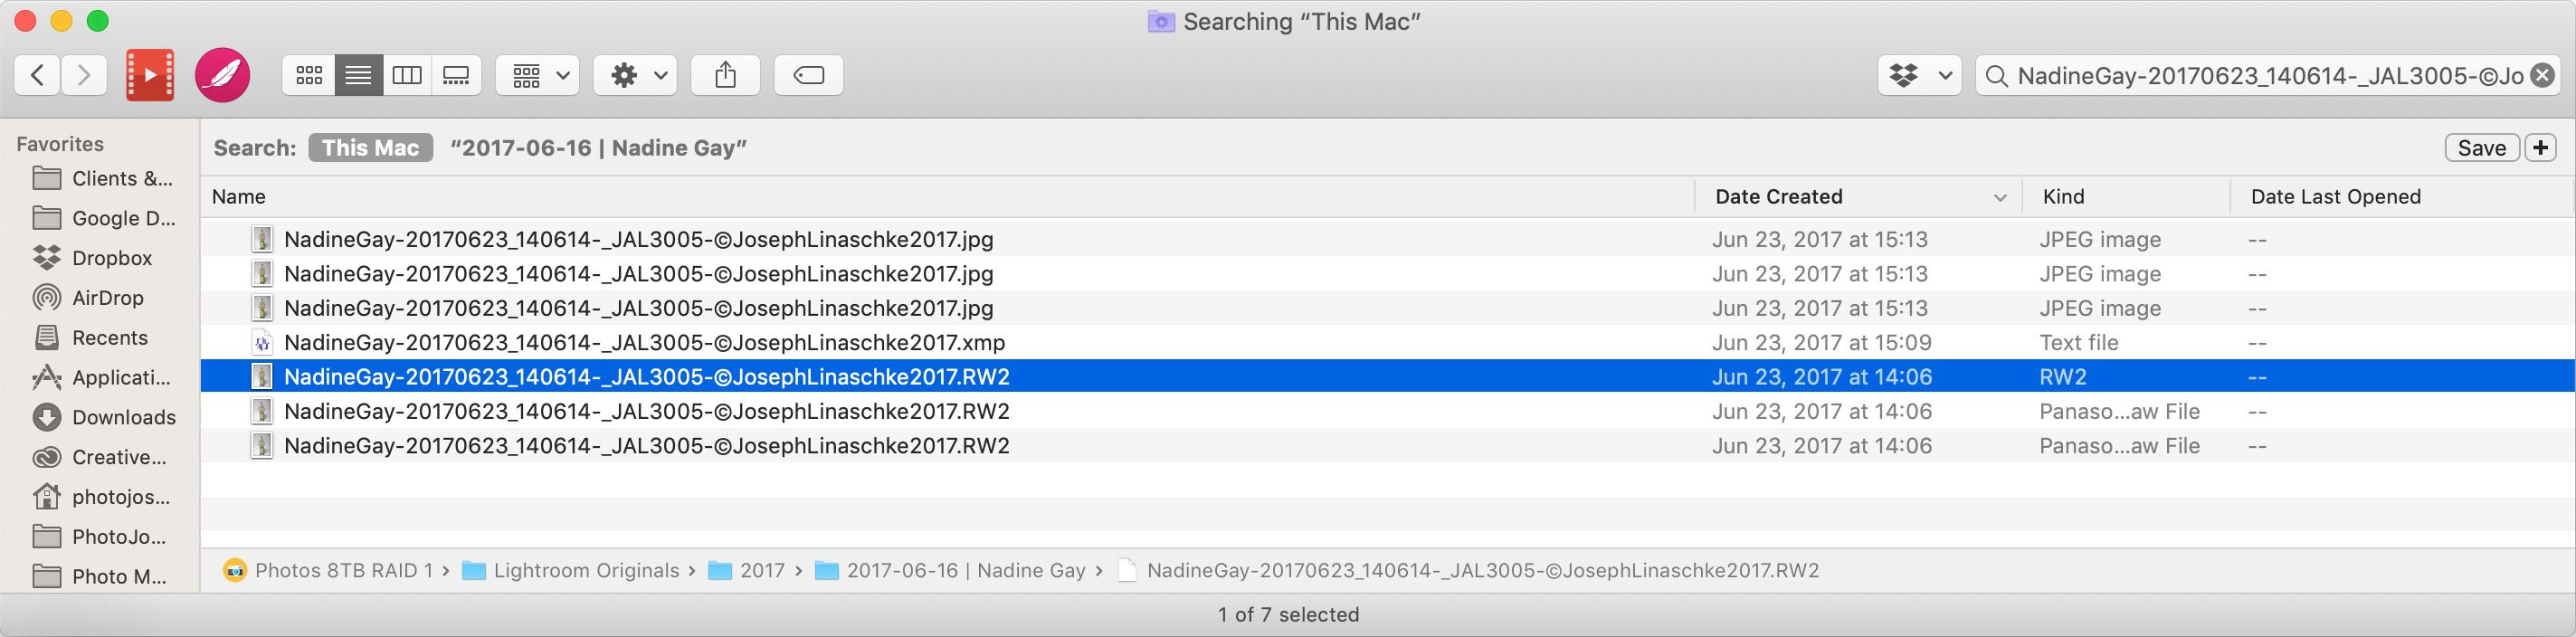 Finder showing search results